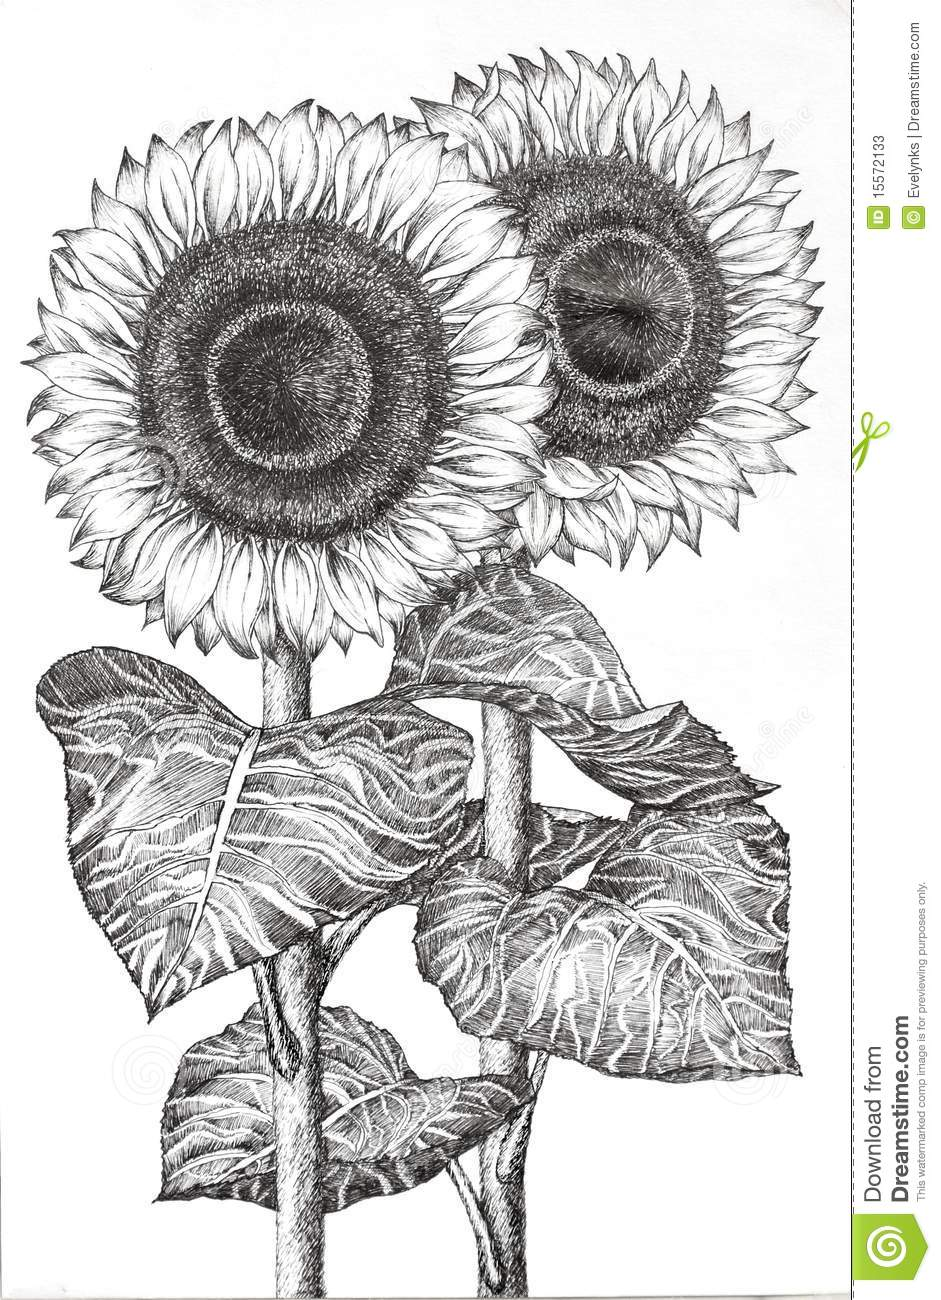 Water Animation Wallpaper Hand Drawn Image Of Two Sunflowers Stock Photos Image